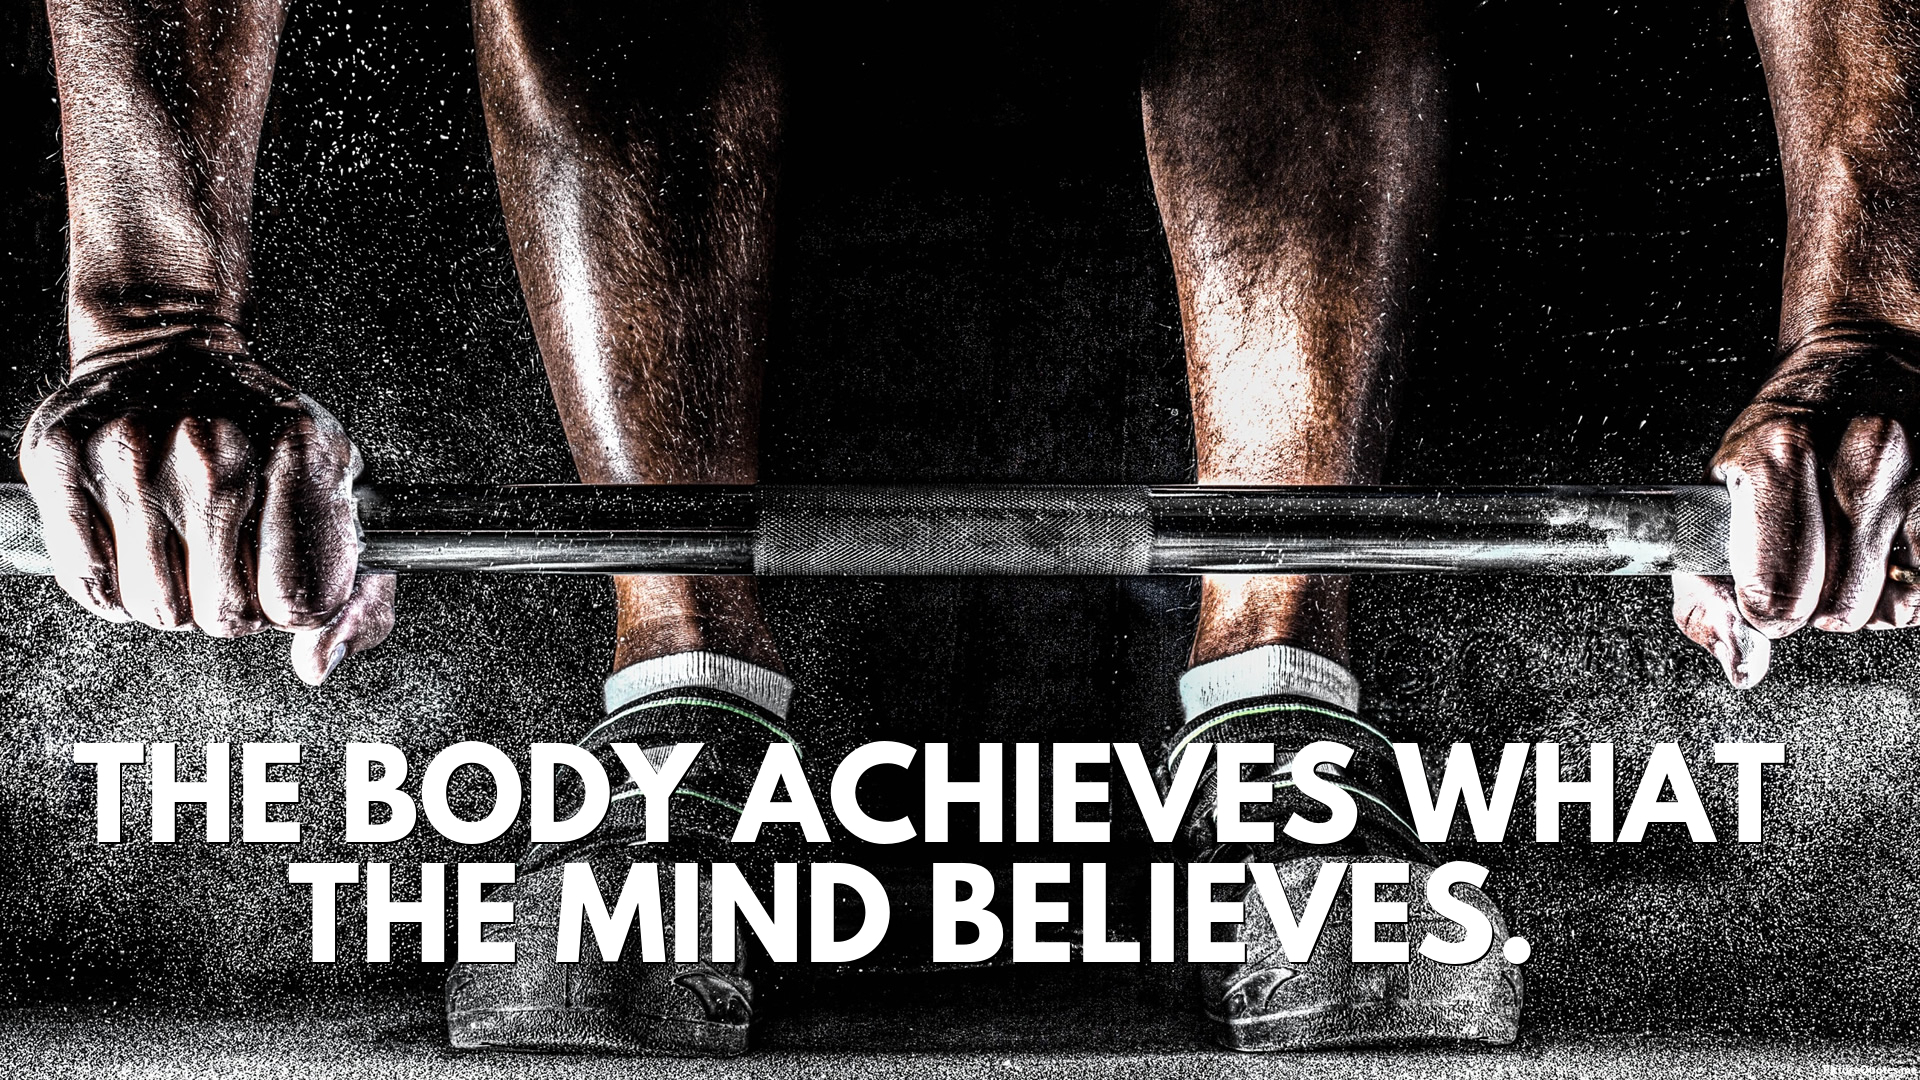 The body achieves what the mind believes. - Unknown : id: 5701